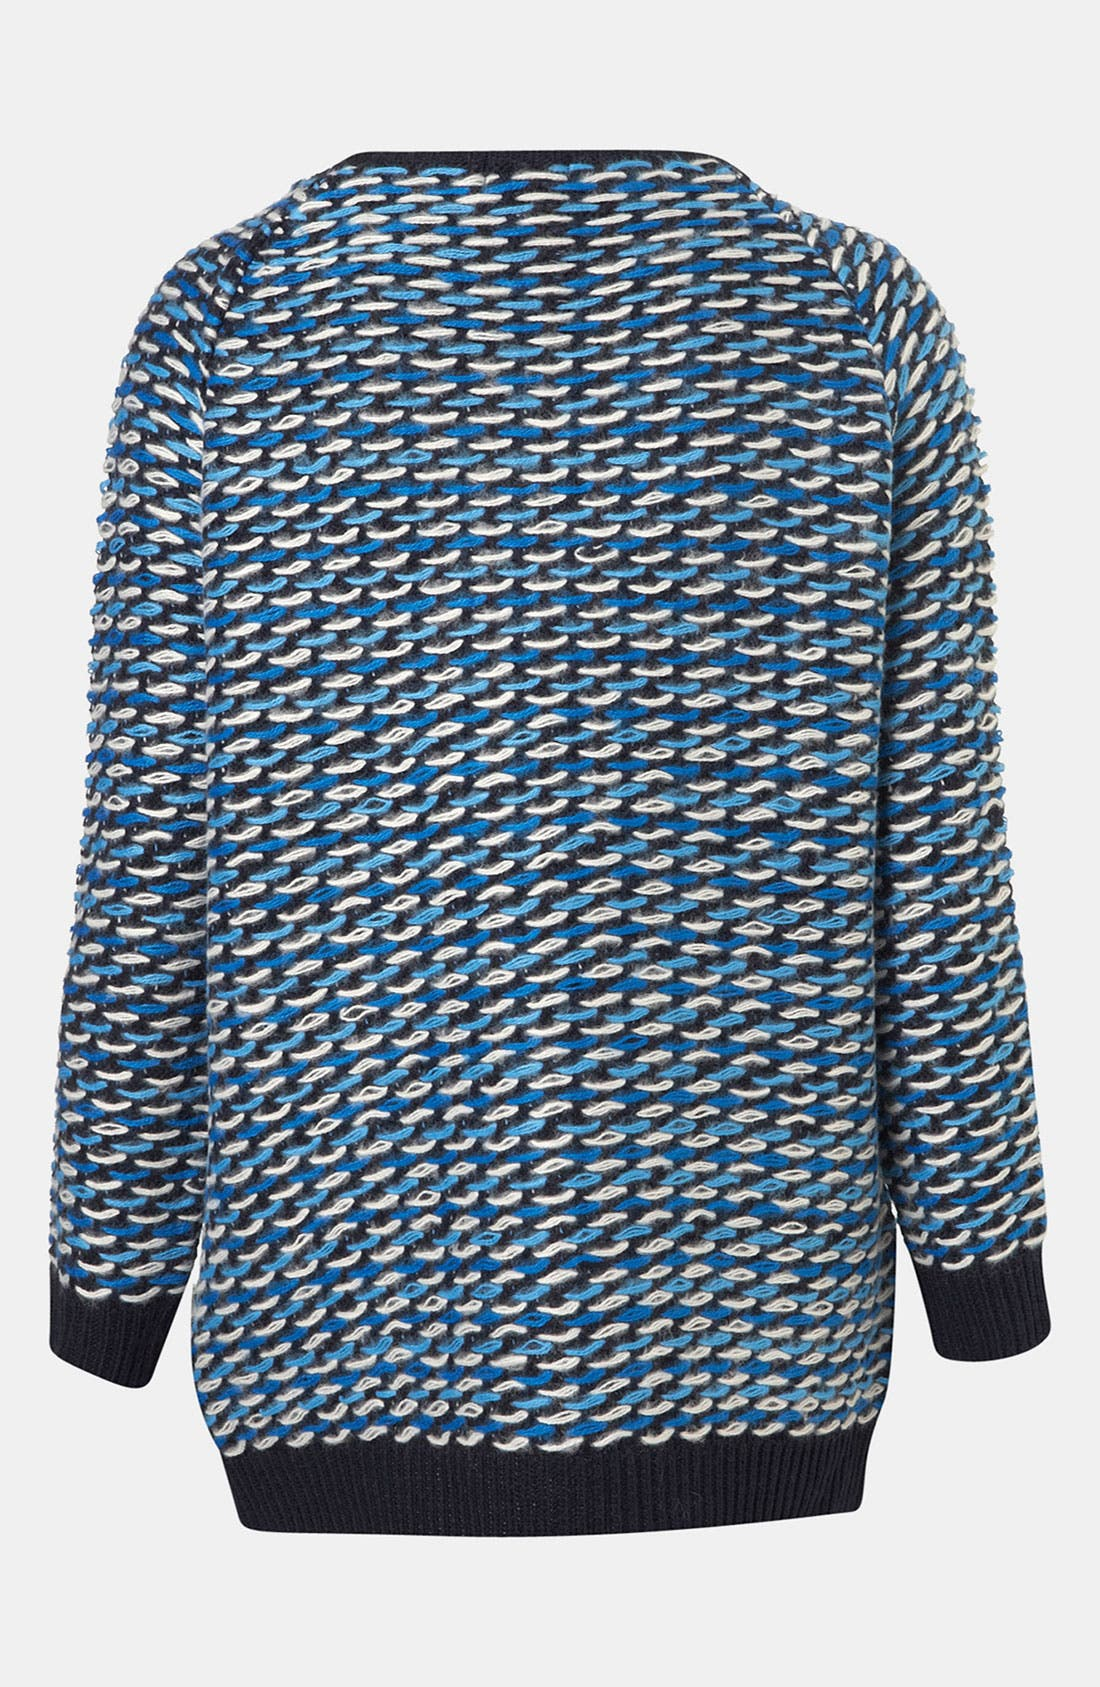 Loop Stitch Sweater,                             Alternate thumbnail 2, color,                             400